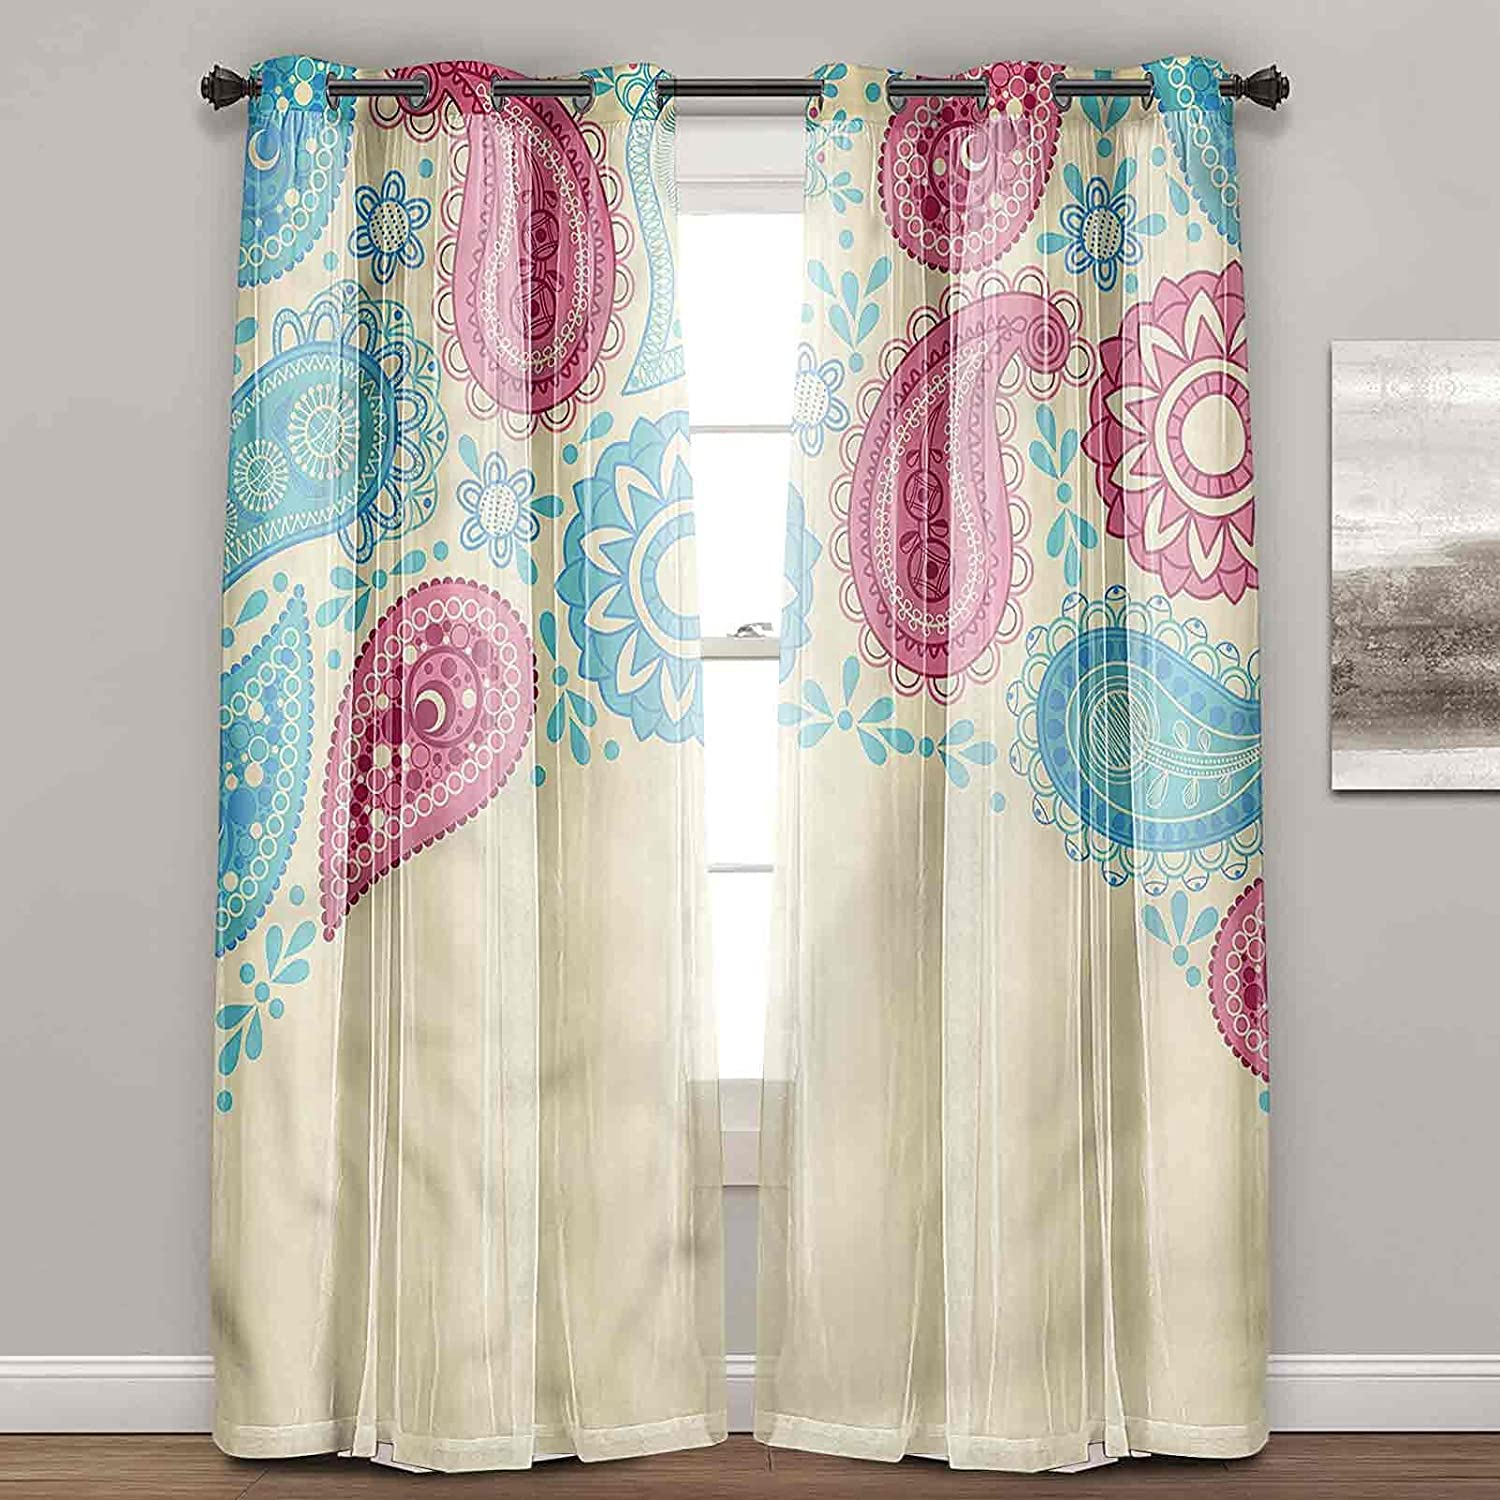 Light Blocking Curtains Paisley Leaves SEAL limited product with Design Persian Sou New Orleans Mall